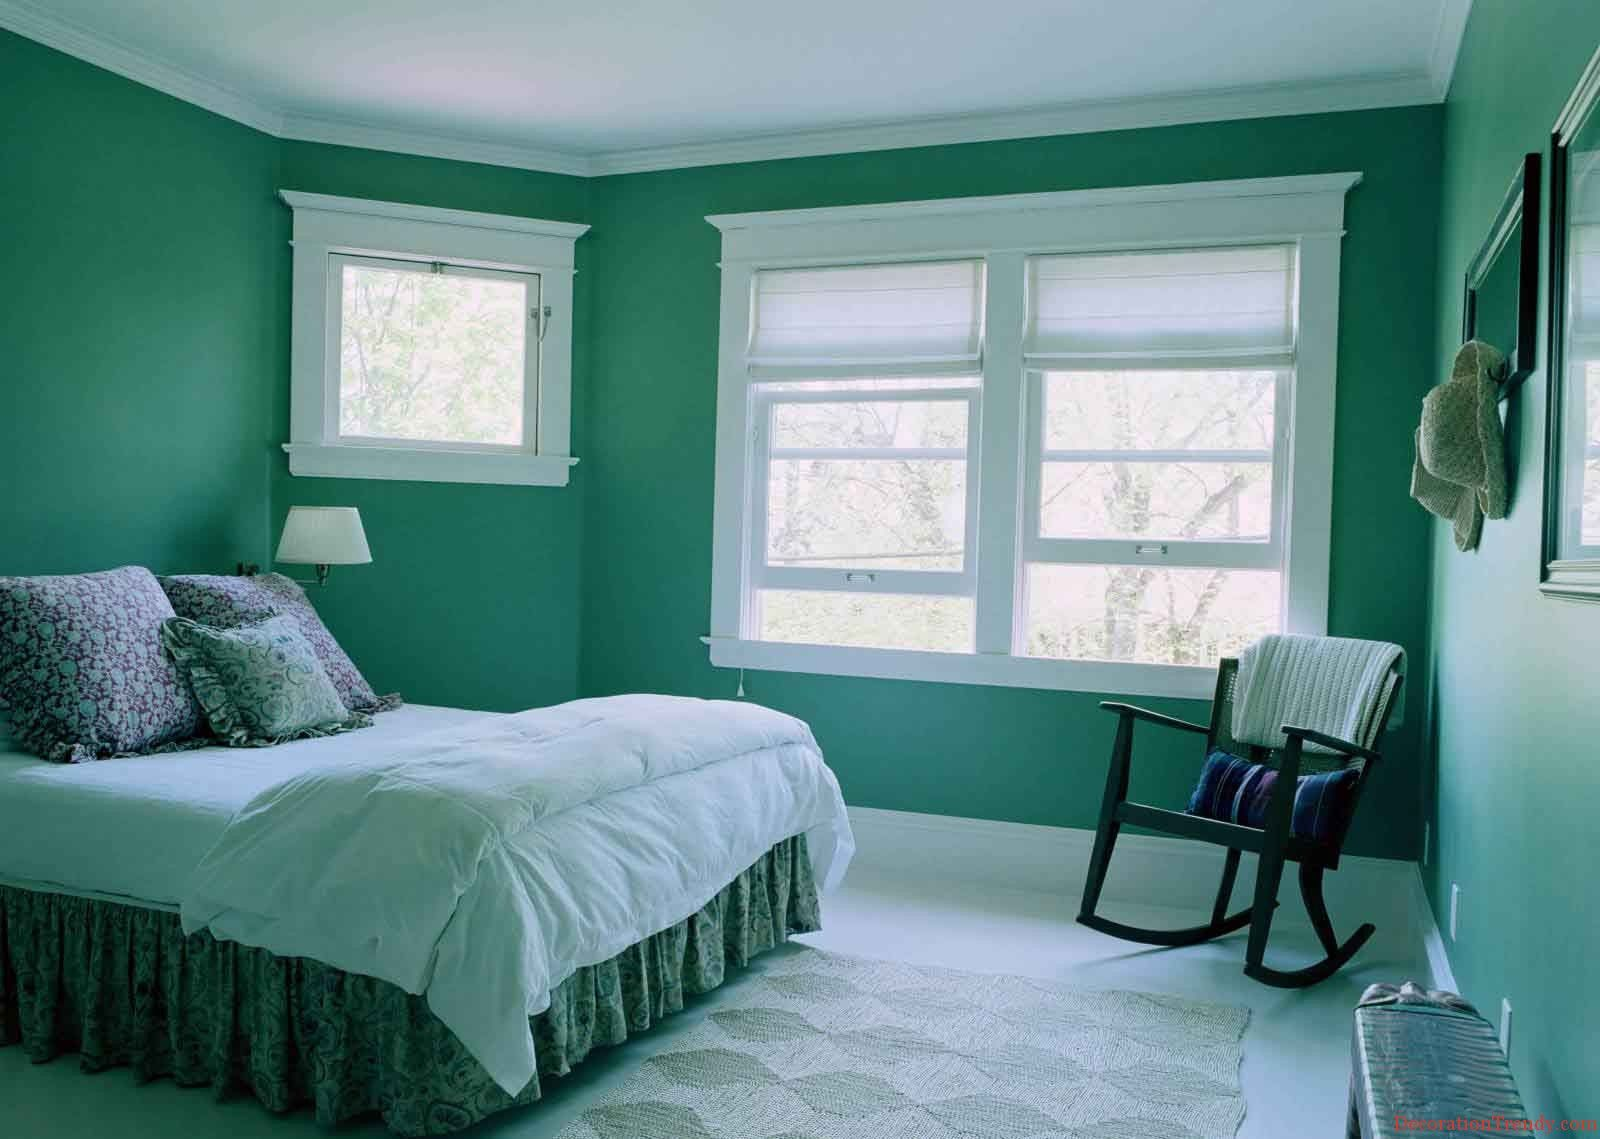 Room paint colors combination - Wall Color Combination Design Ideas And Photos Get Creative Wall Painting Ideas Designs For